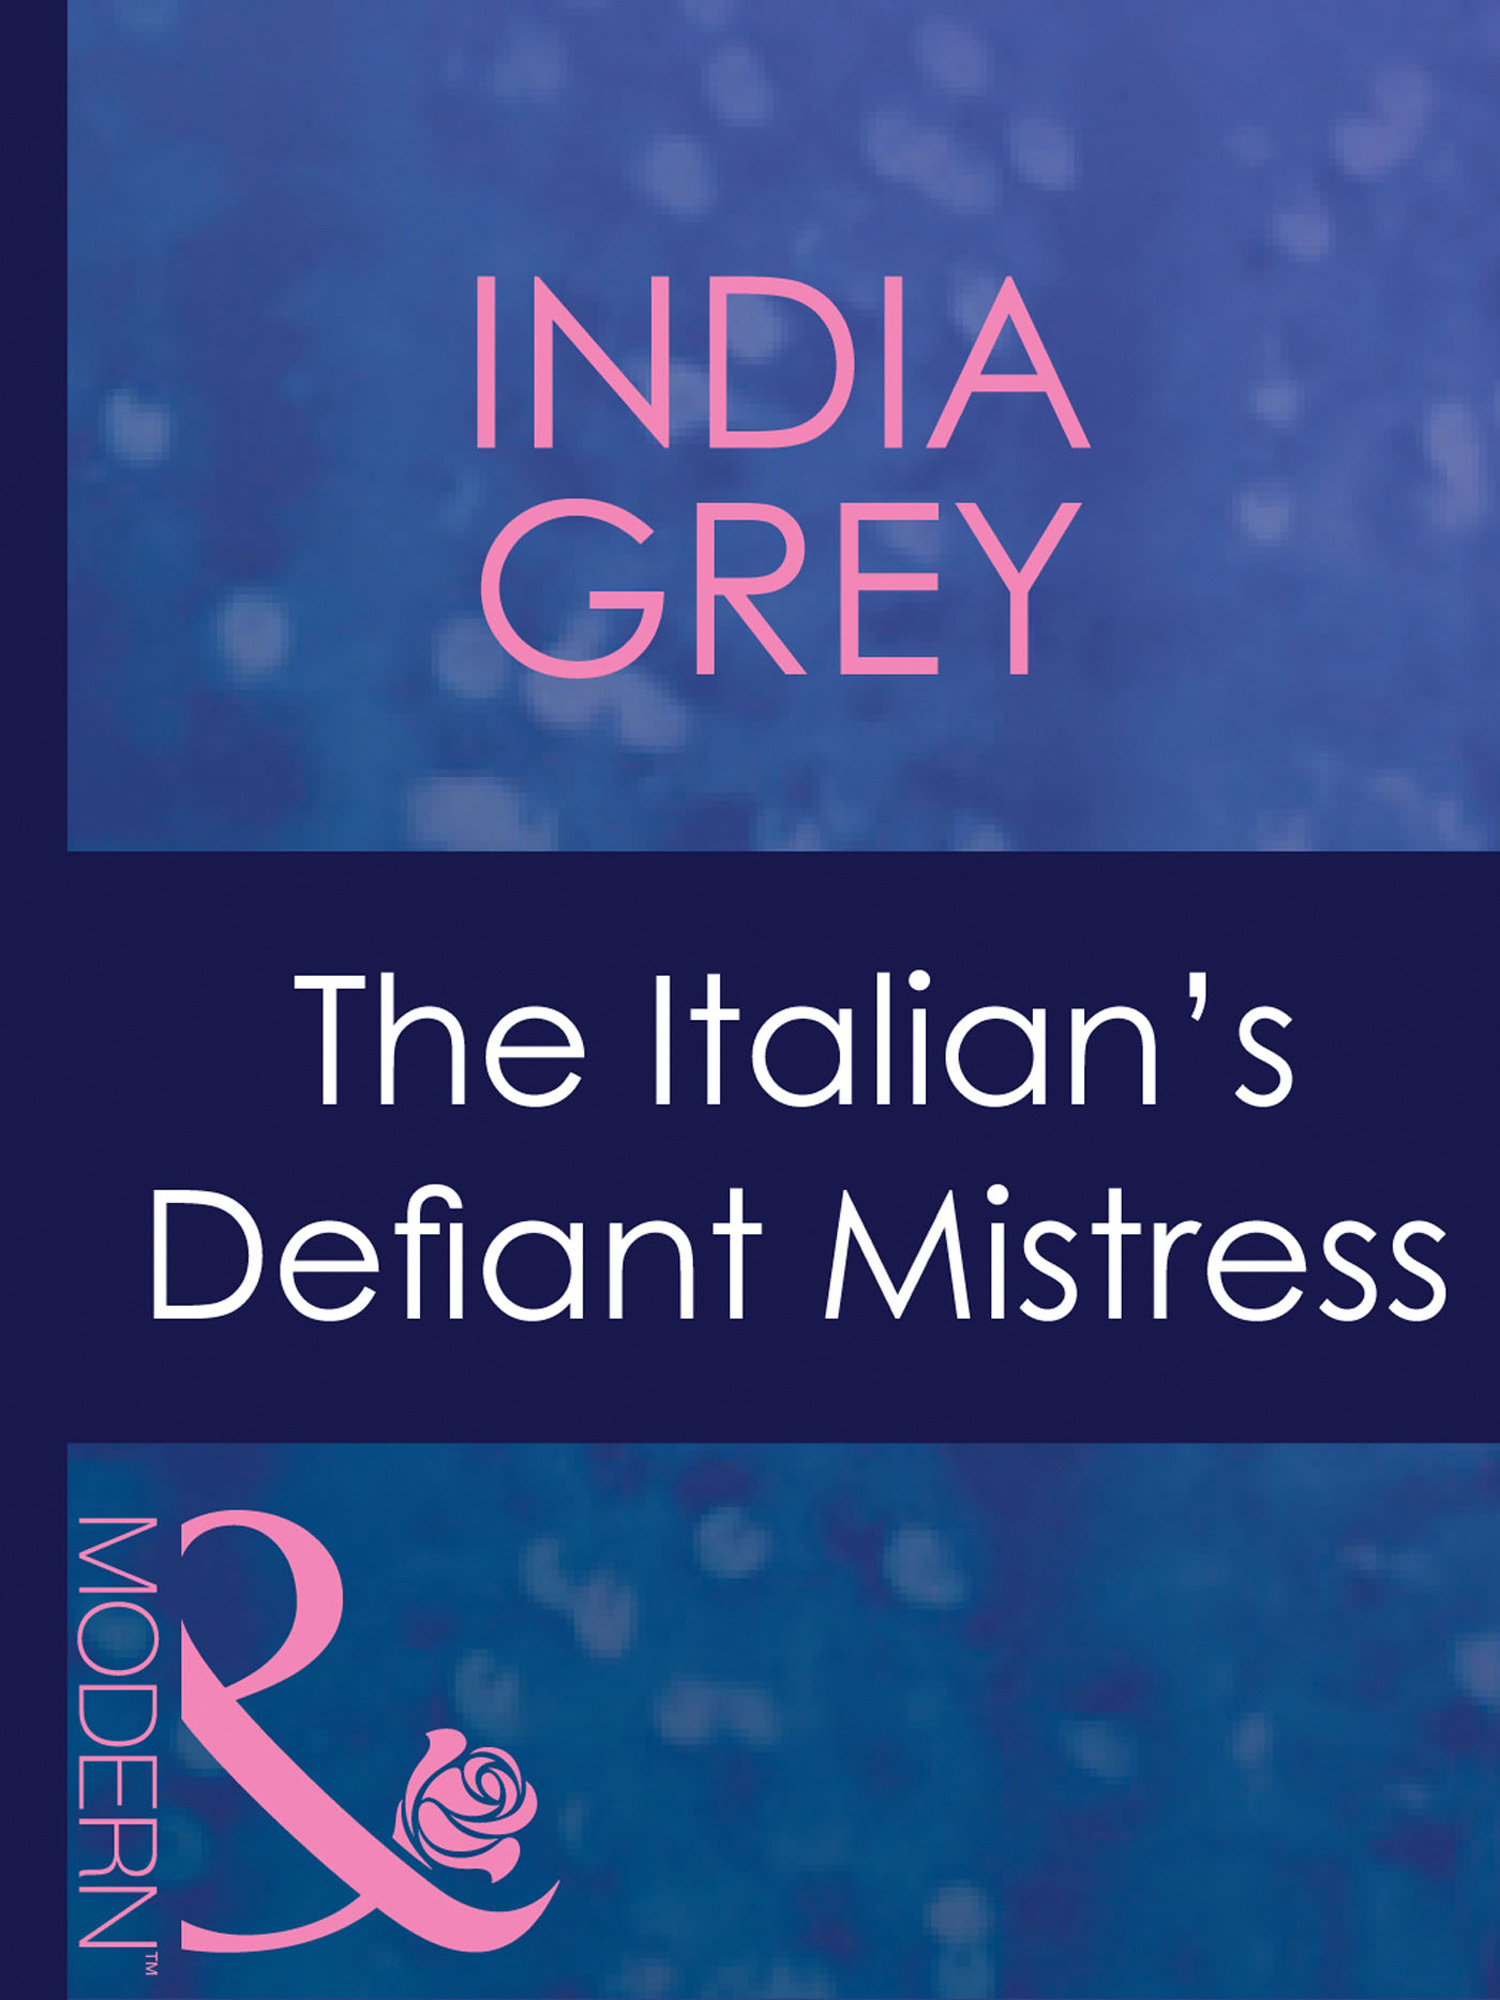 The Italian's Defiant Mistress